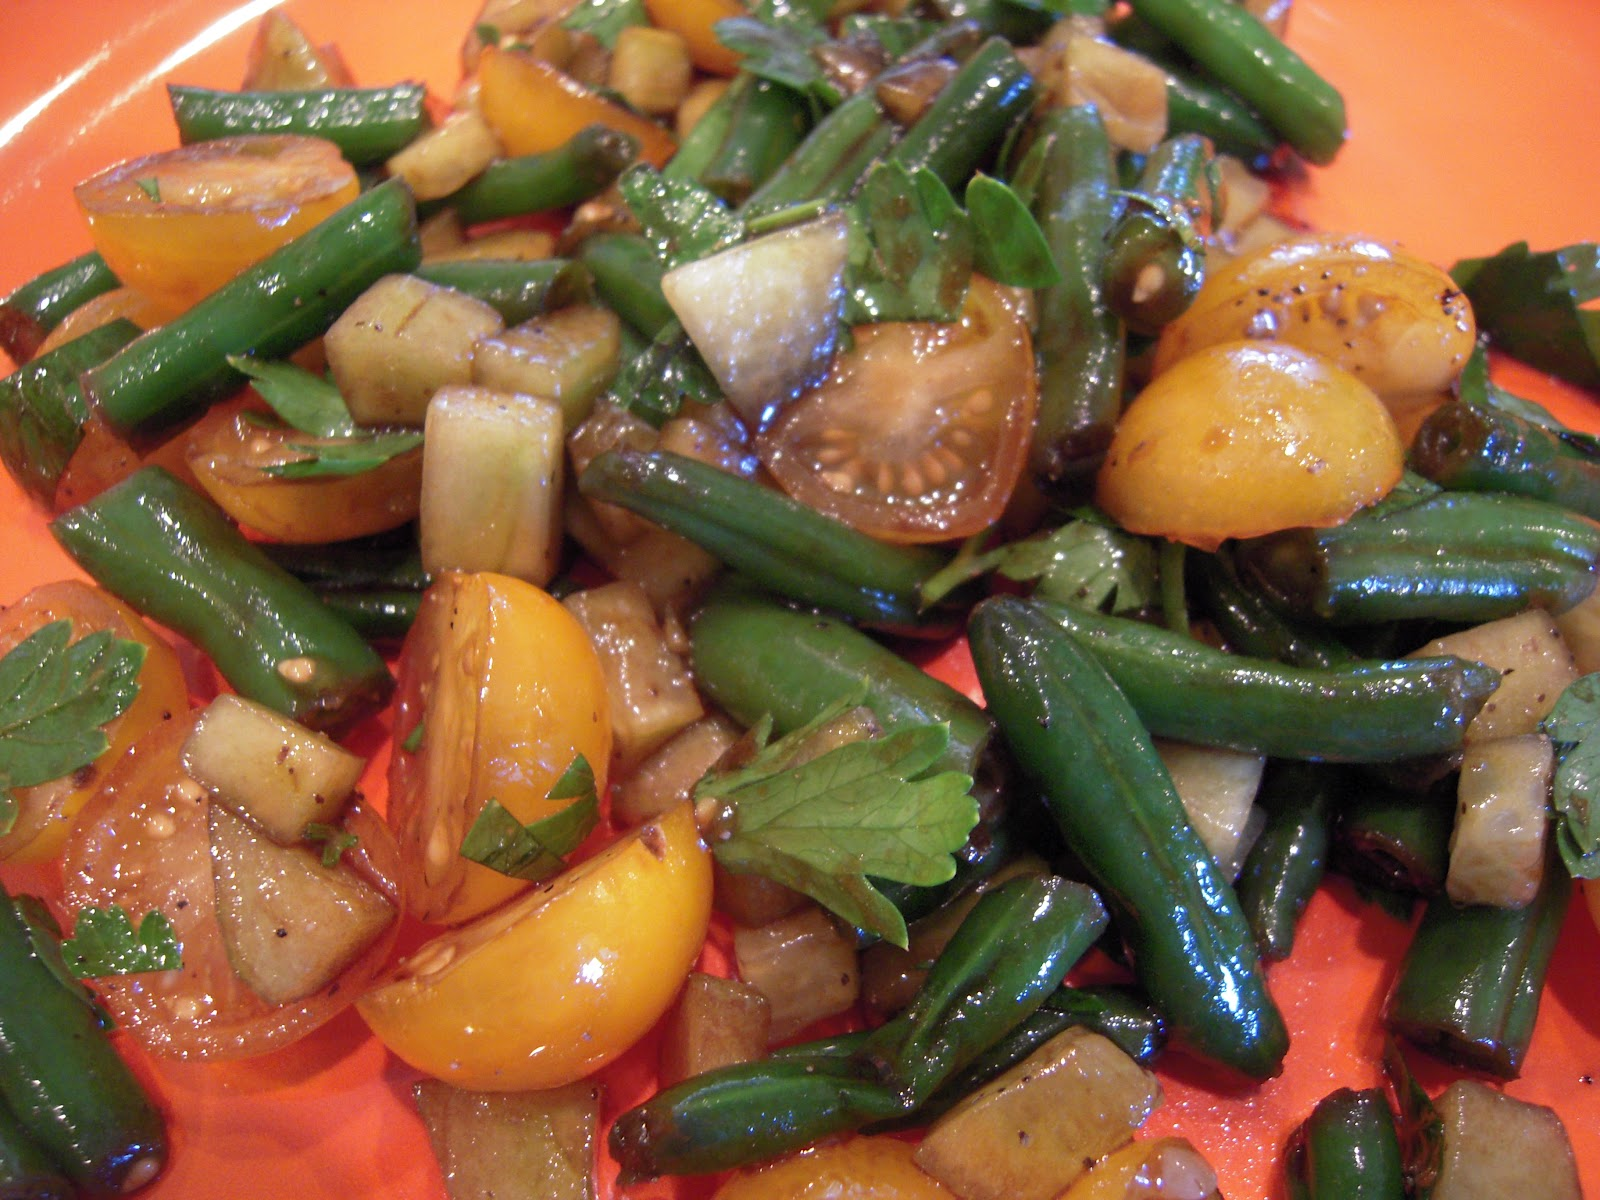 Food Garden Recipes: Green Bean, Cucumber and Cherry Tomato Salad